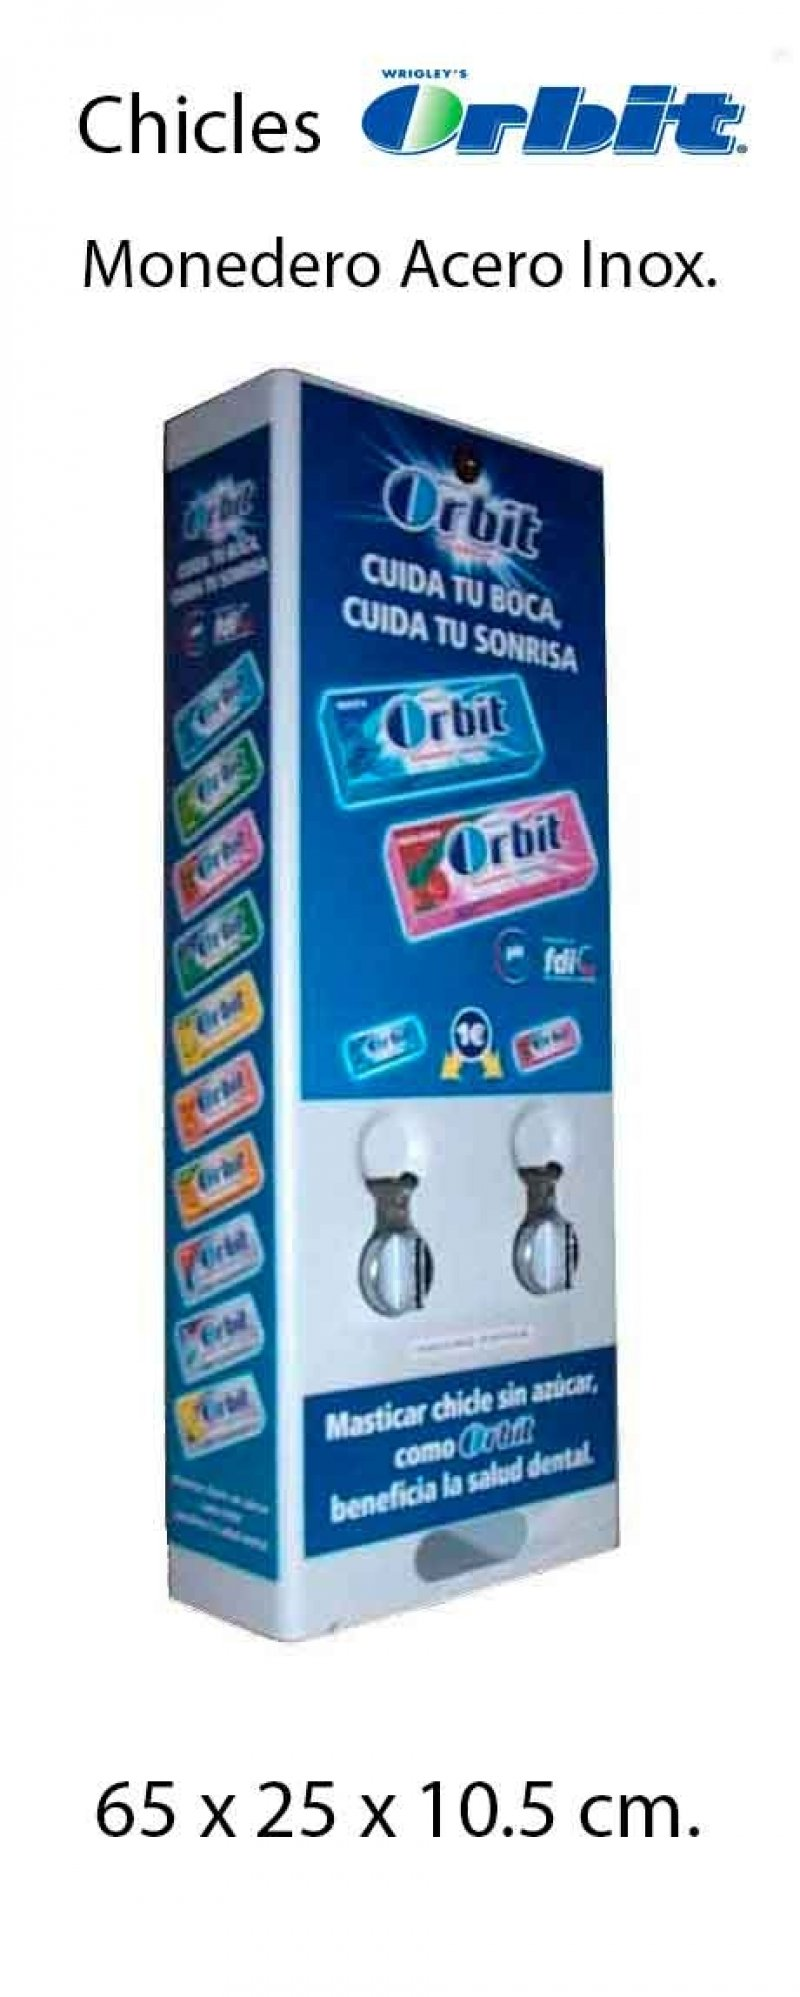 maquina de chicle ORBIT